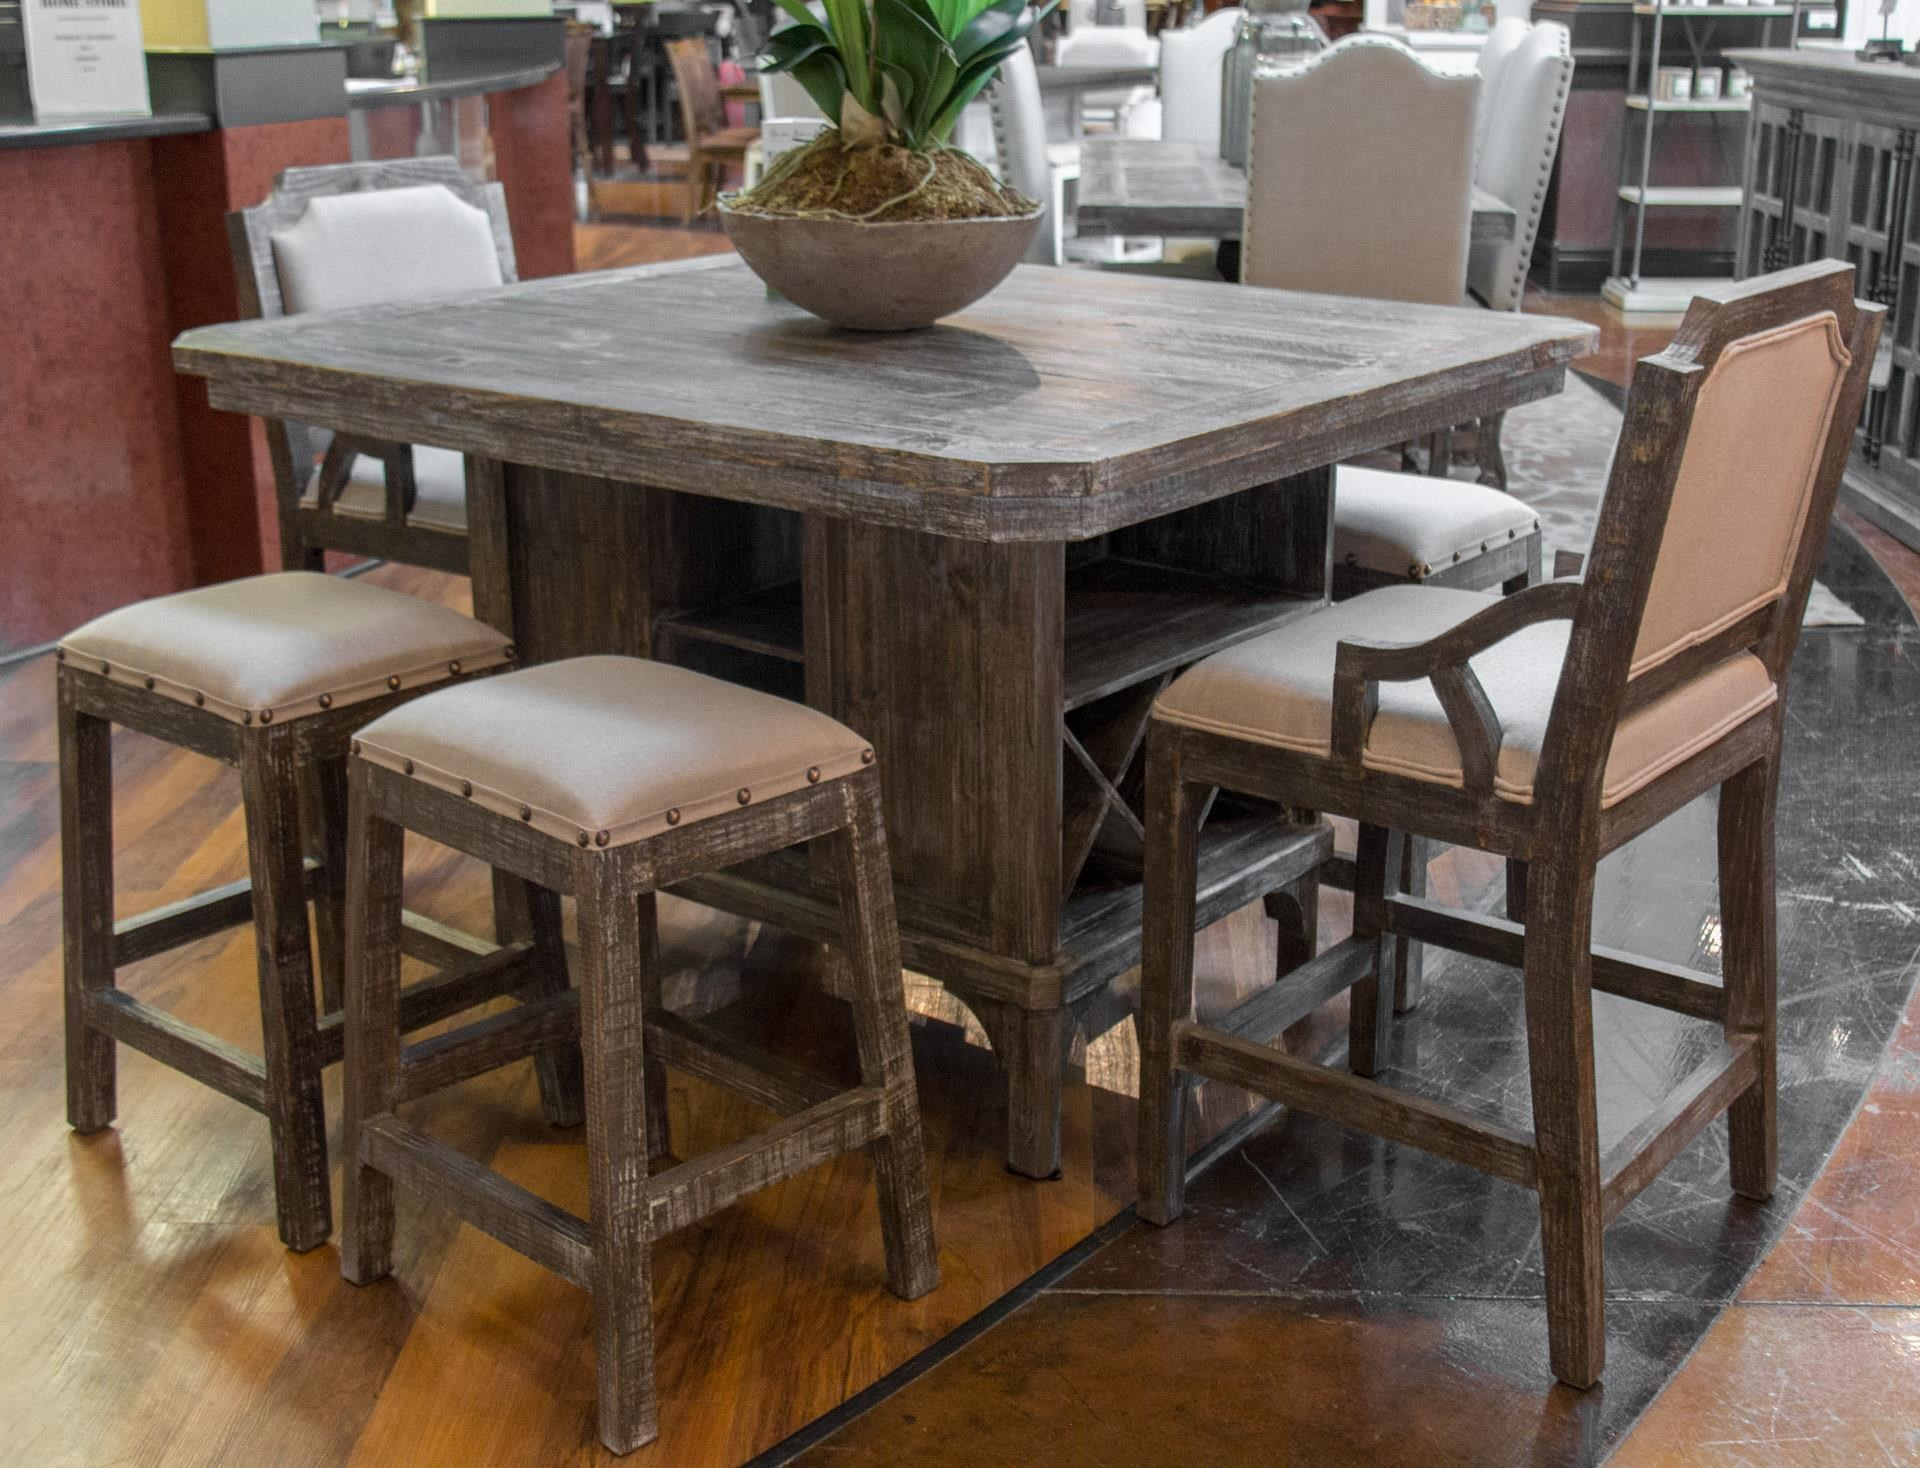 Delicieux Vintage ArtesiaKitchen Island Pub Table, 4 Backless Barstoo